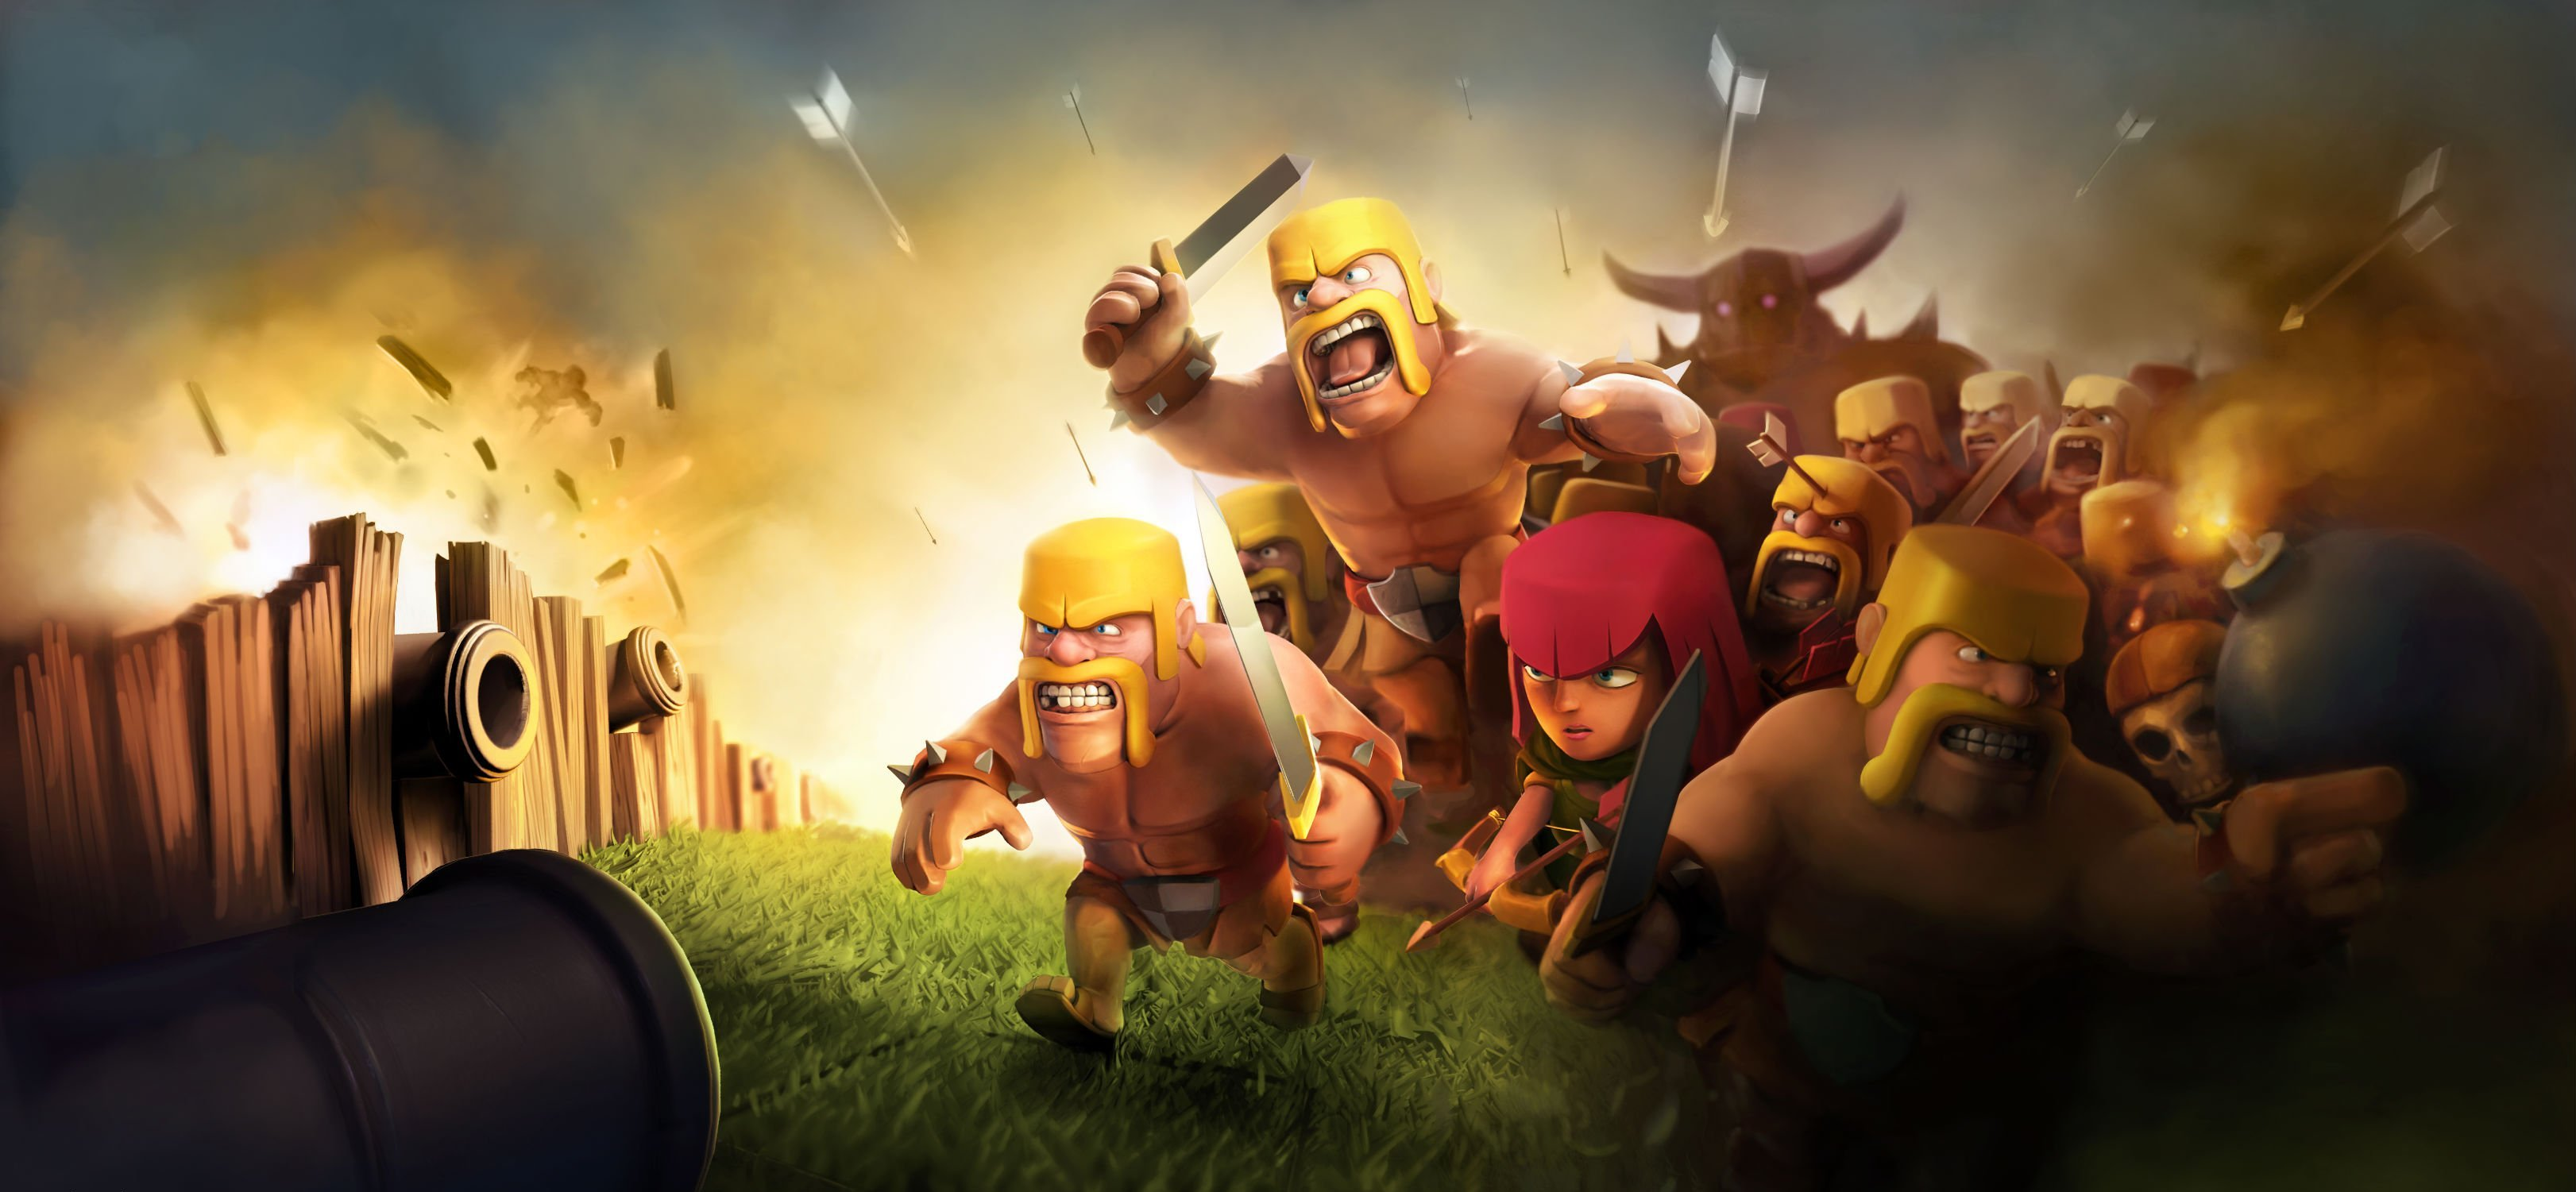 2048x1152 Clash Clans HD 2048x1152 Resolution HD 4k